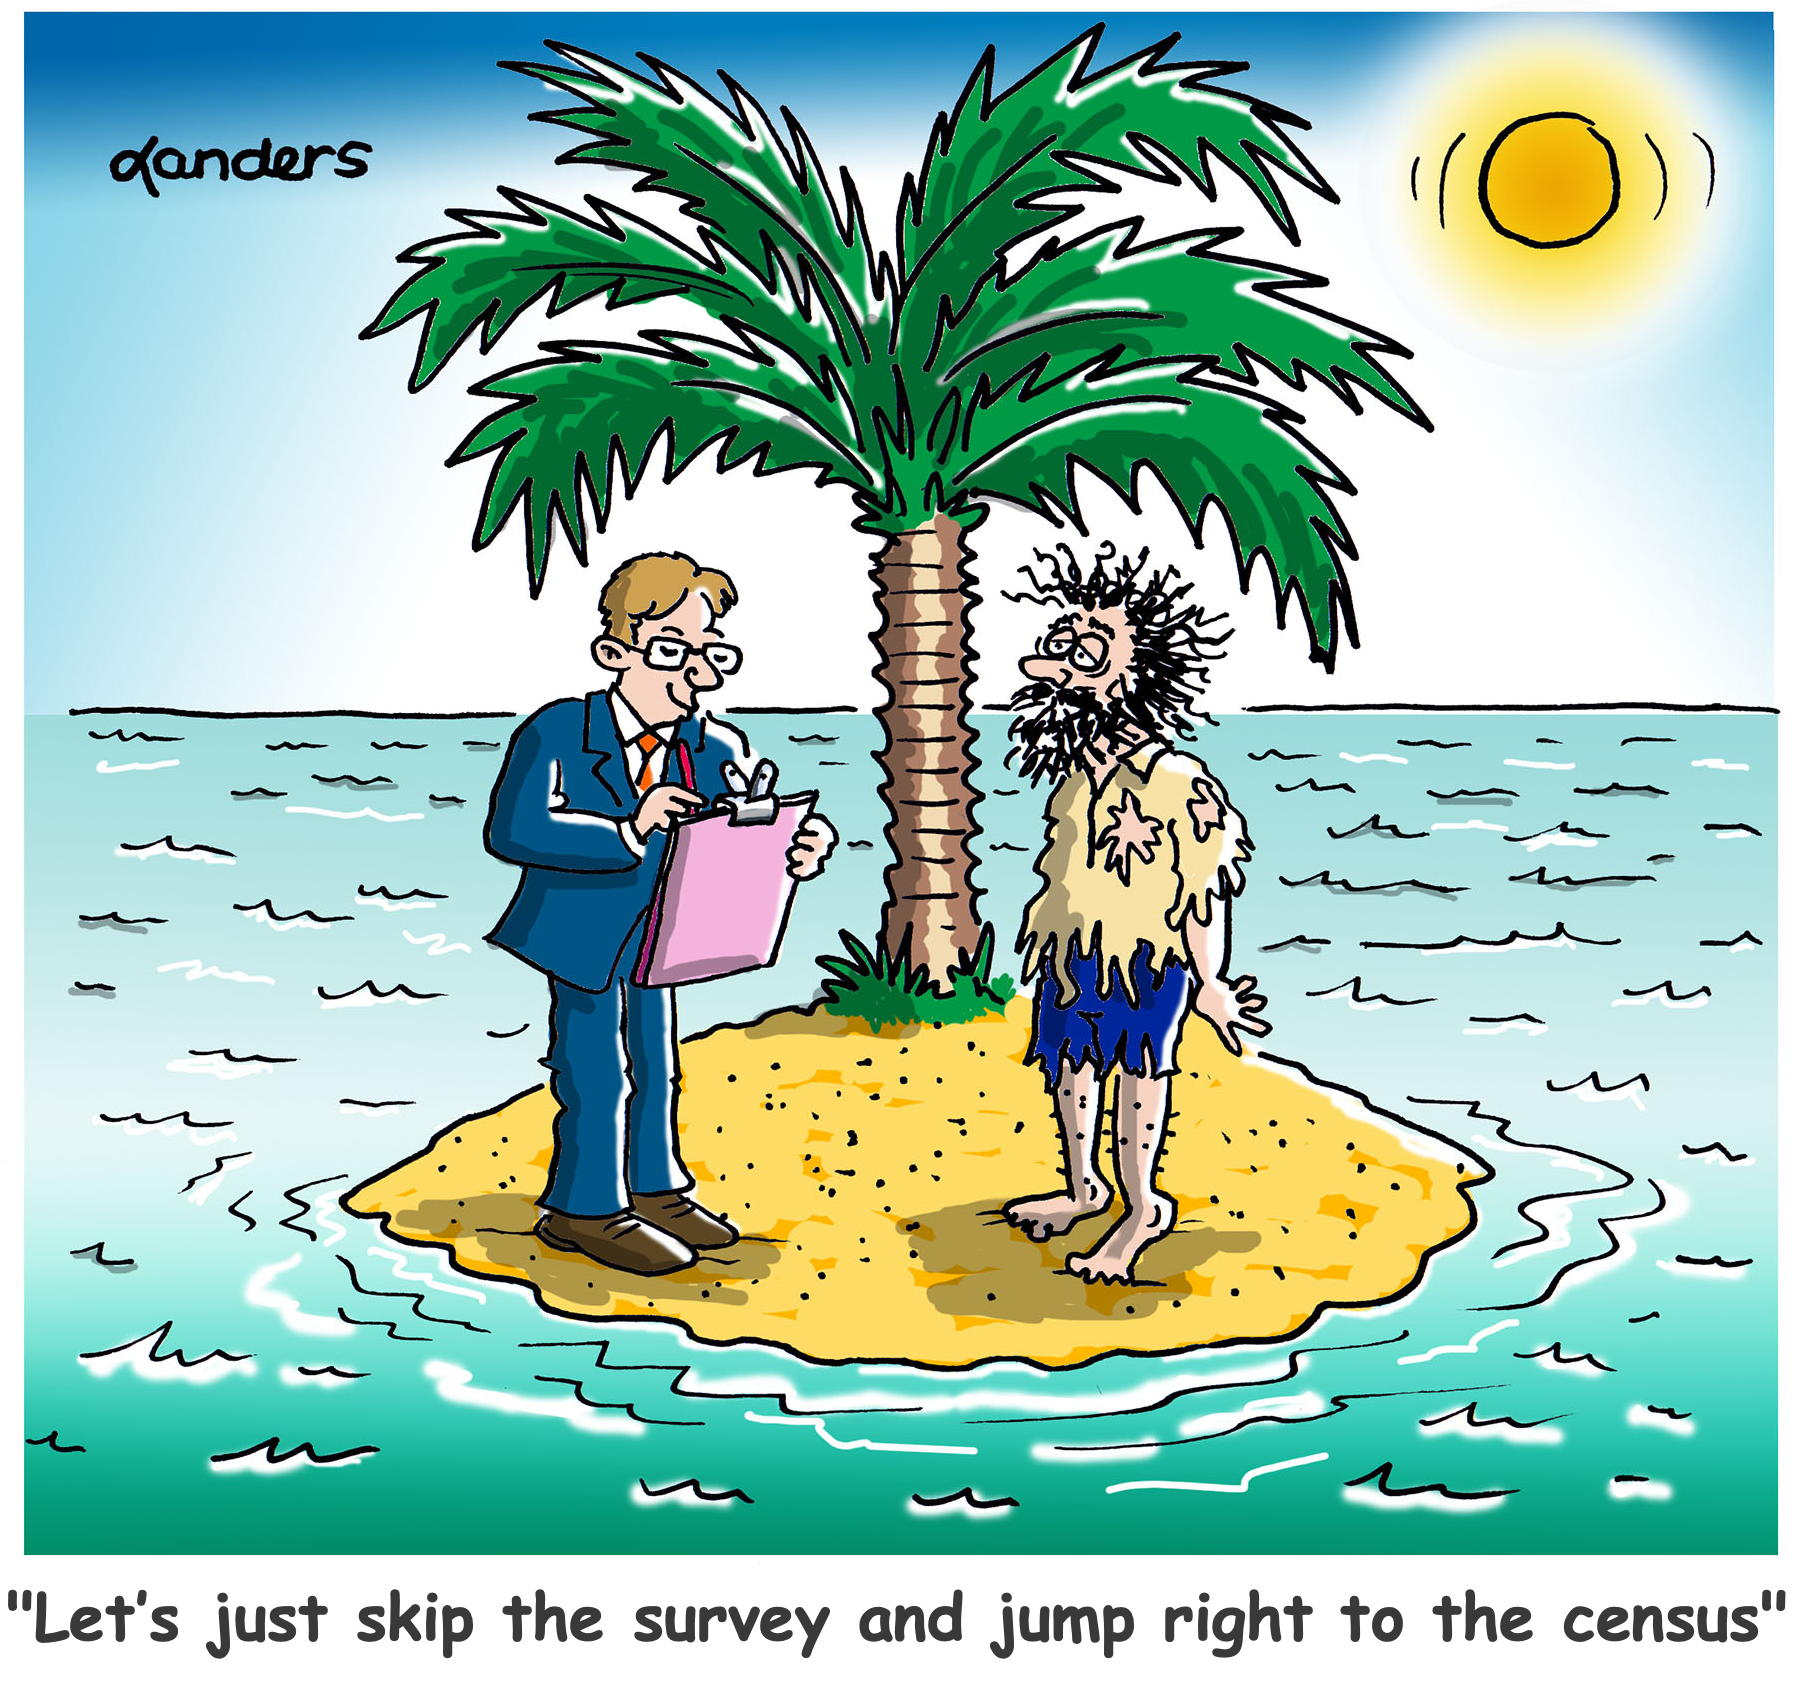 census taker on desert island with one resident